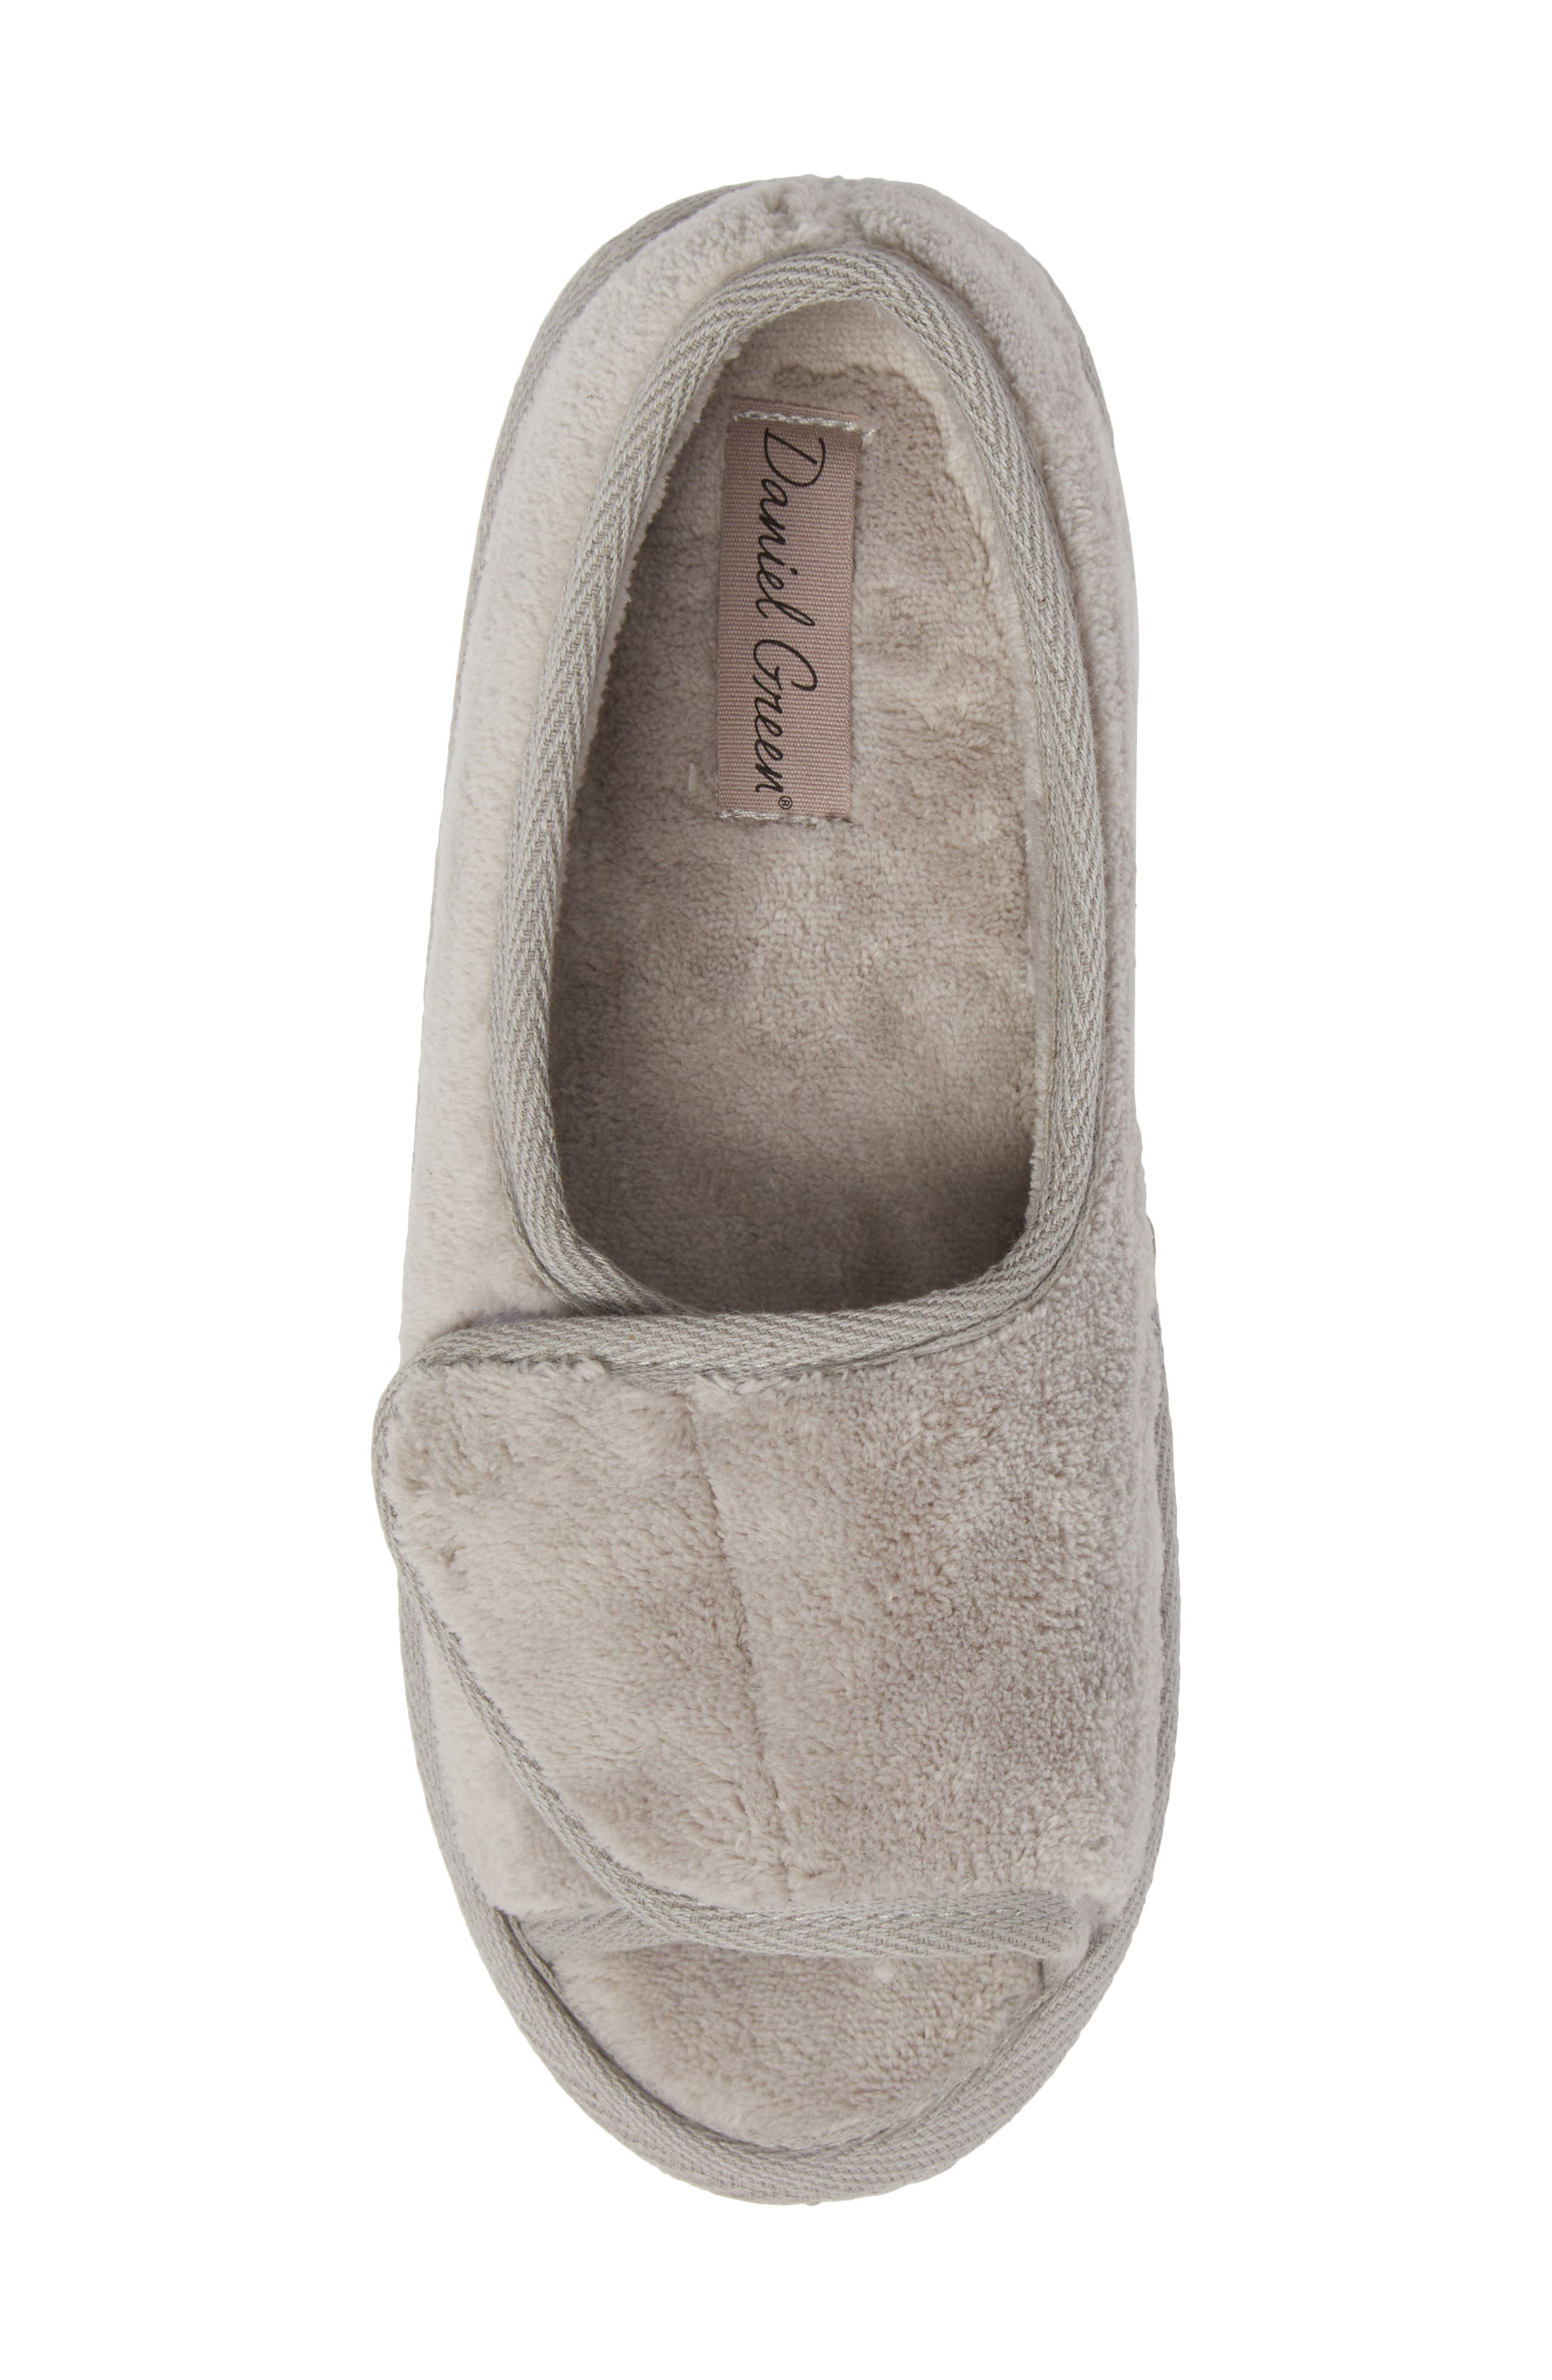 Tara II Slipper,                             Alternate thumbnail 5, color,                             GRAY FABRIC